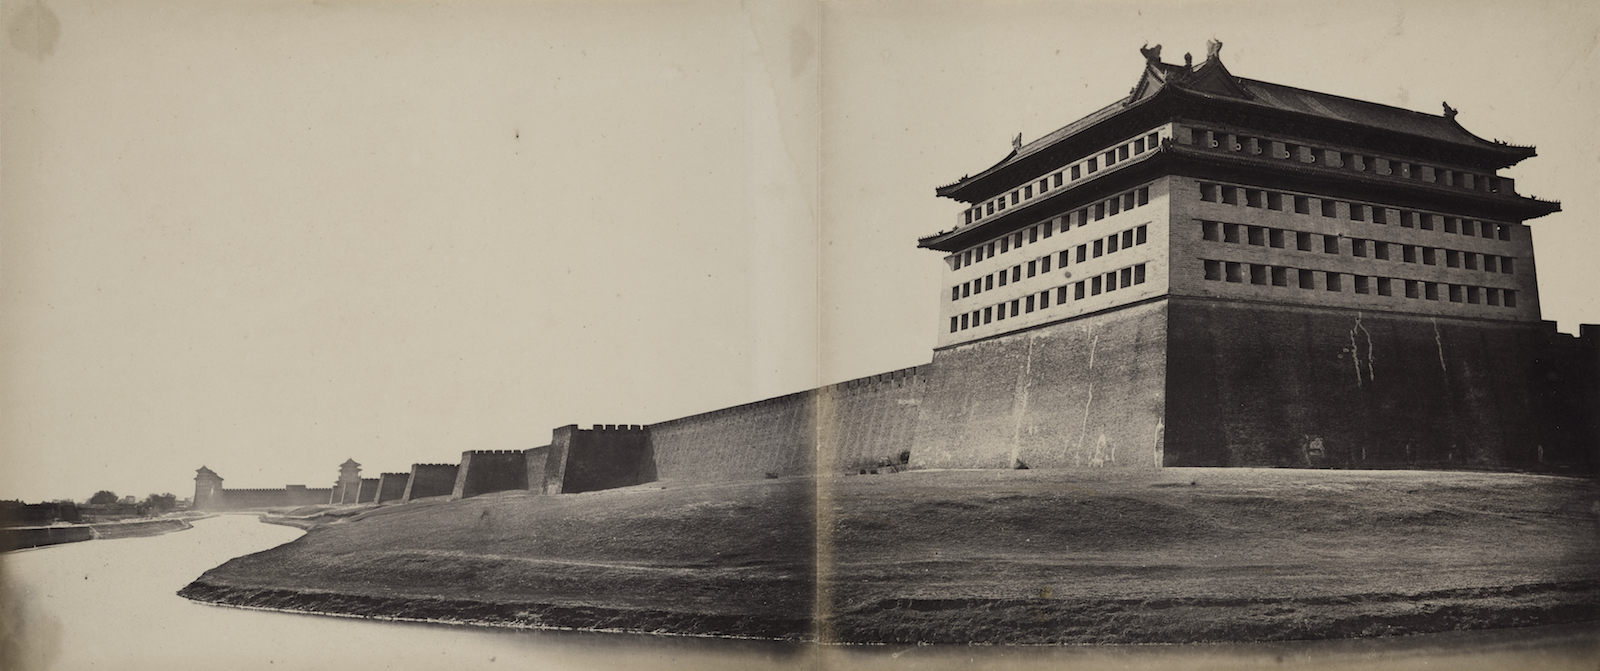 フェリーチェ・ベアト「北京の北門」(1860年)/The Loewentheil Collection of China Photography